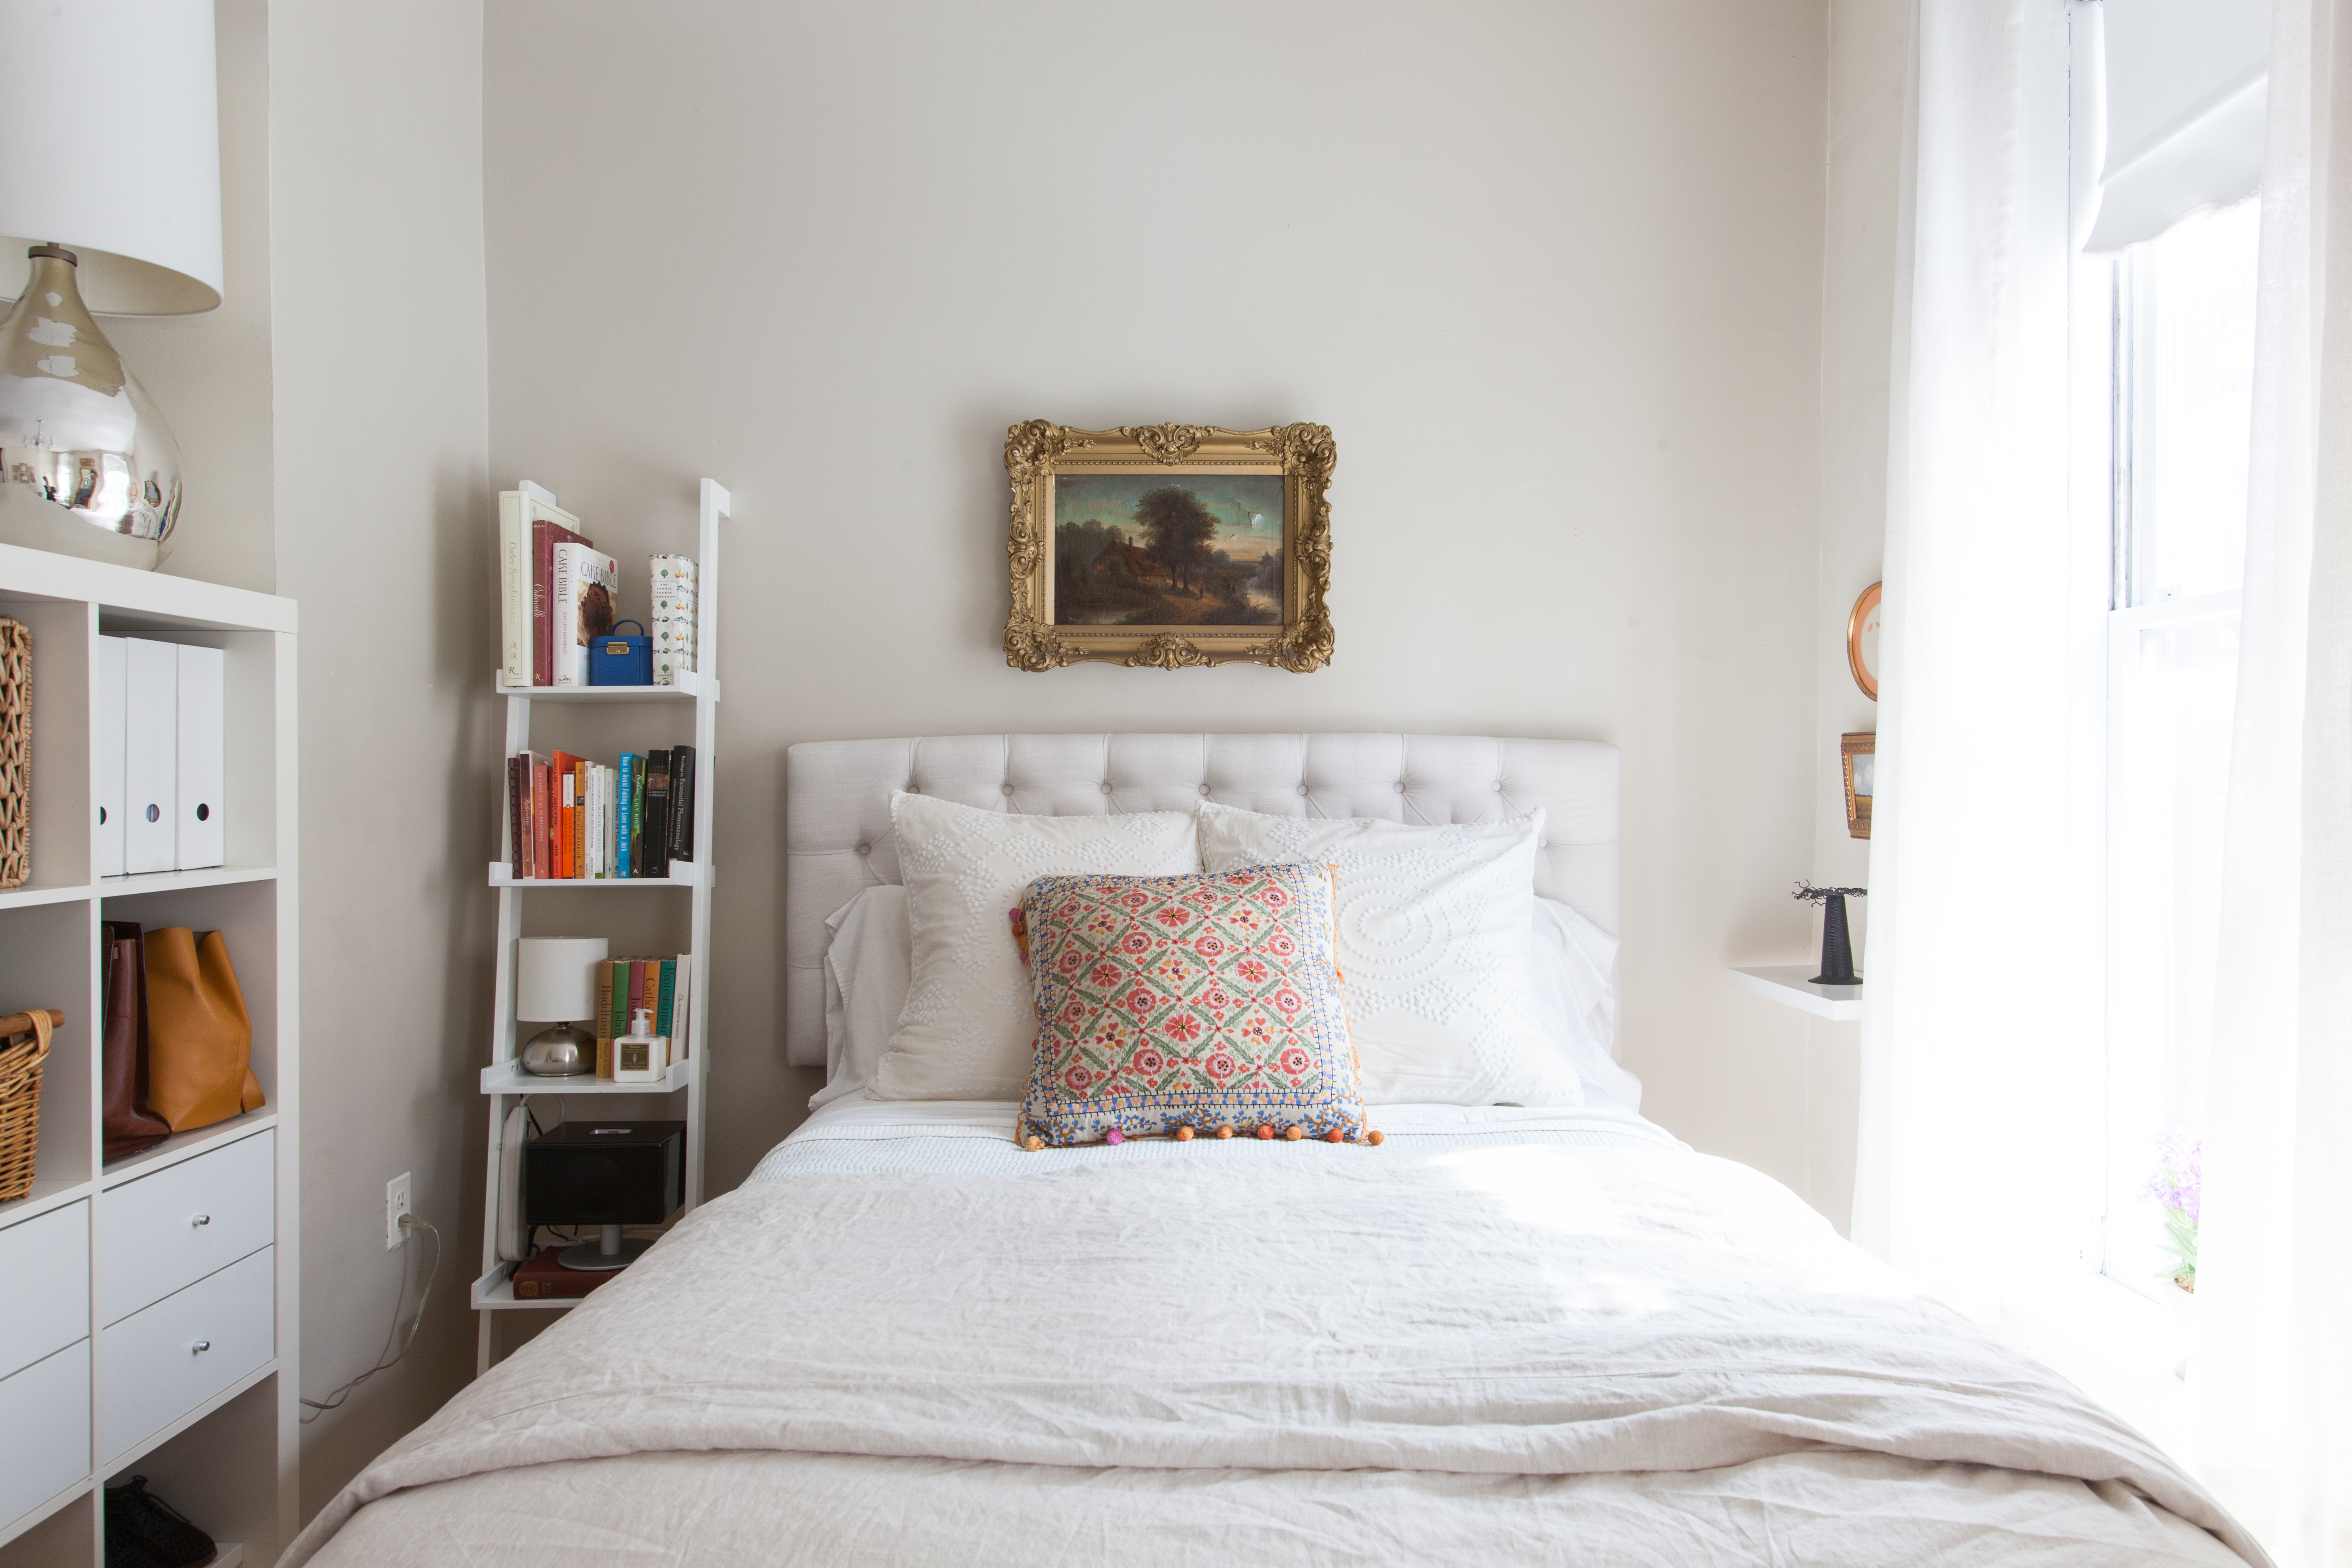 Bedroom storage ideas tour of a very small but super cute 190 square foot studio JBYCOLU